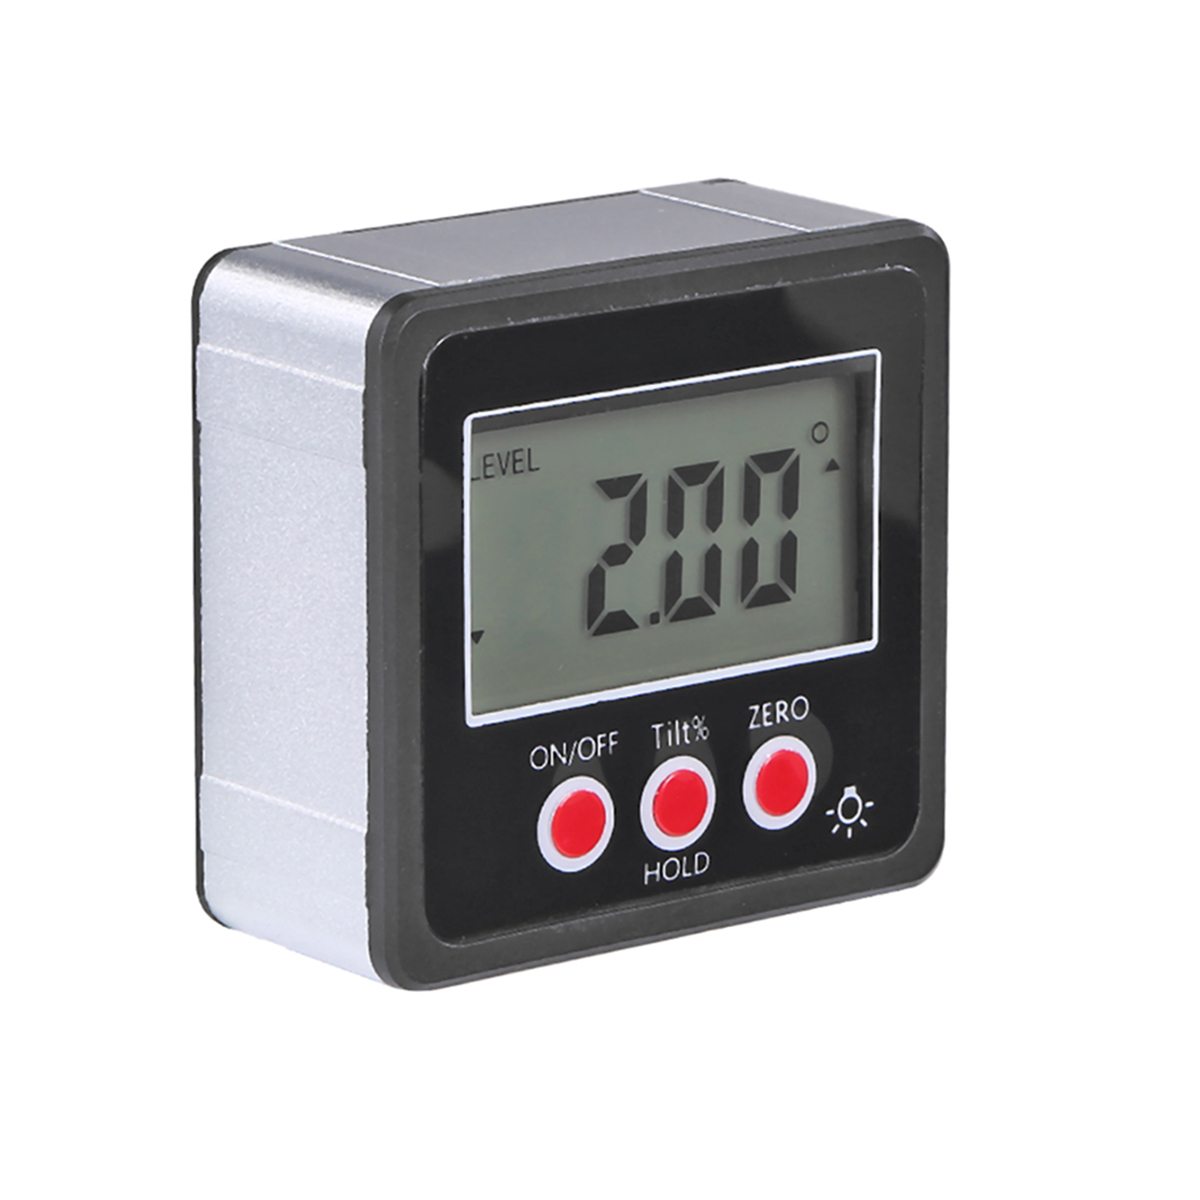 ANENG Precise Digital Inclinometer Protractor Waterproof Level Box Angle Finder Bevel Box With Magnetic Base